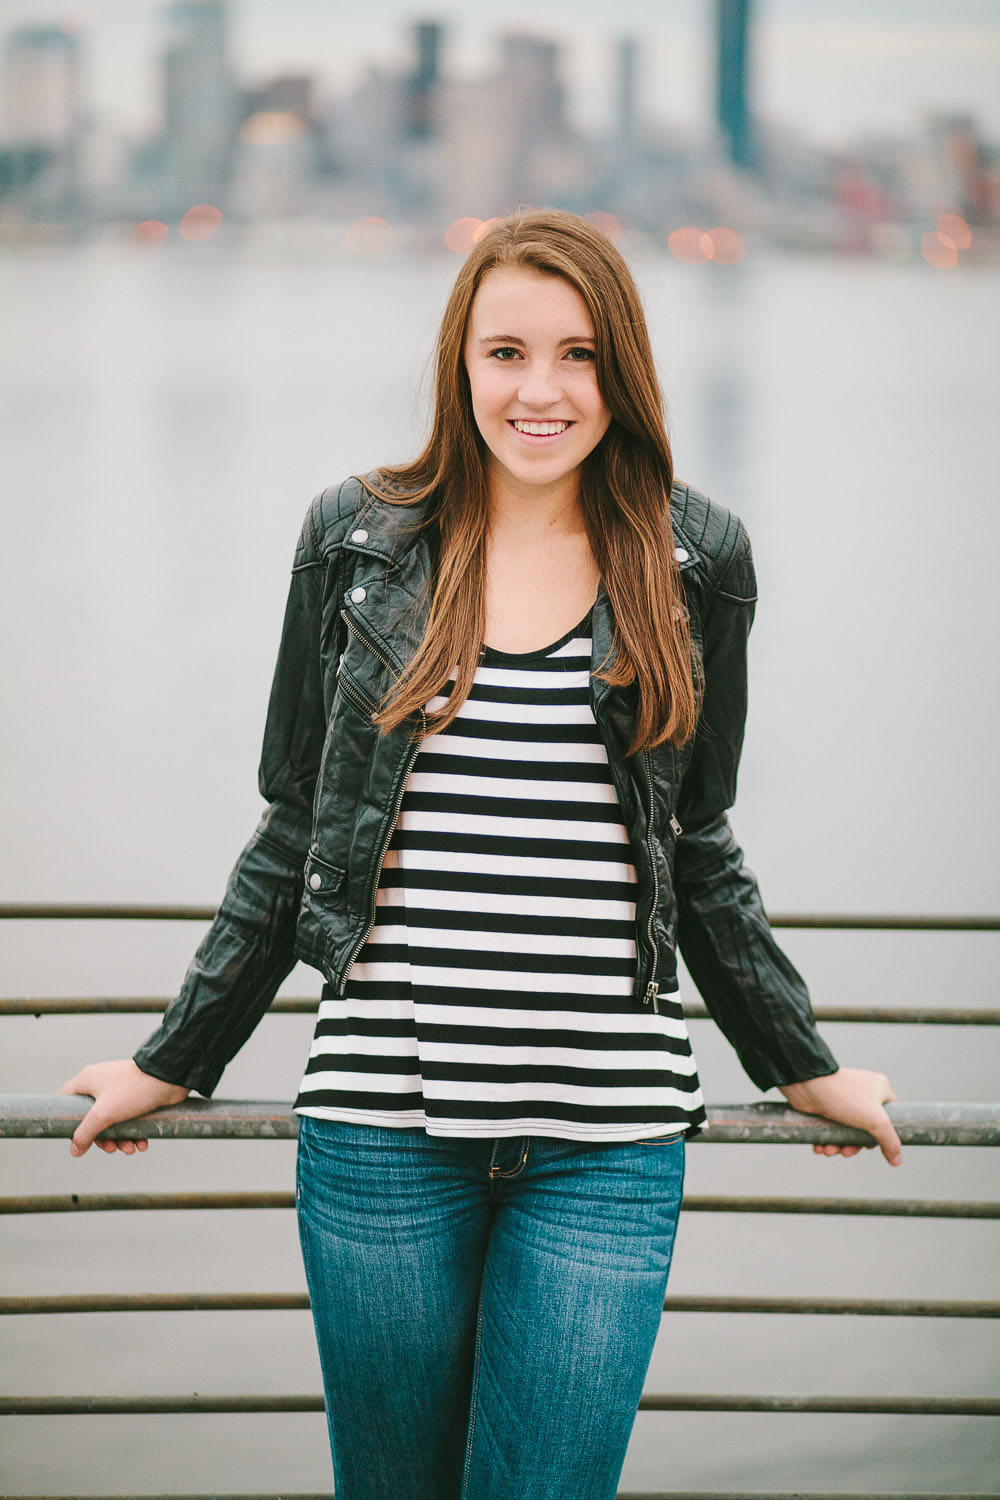 Seattle girl senior portrait photography